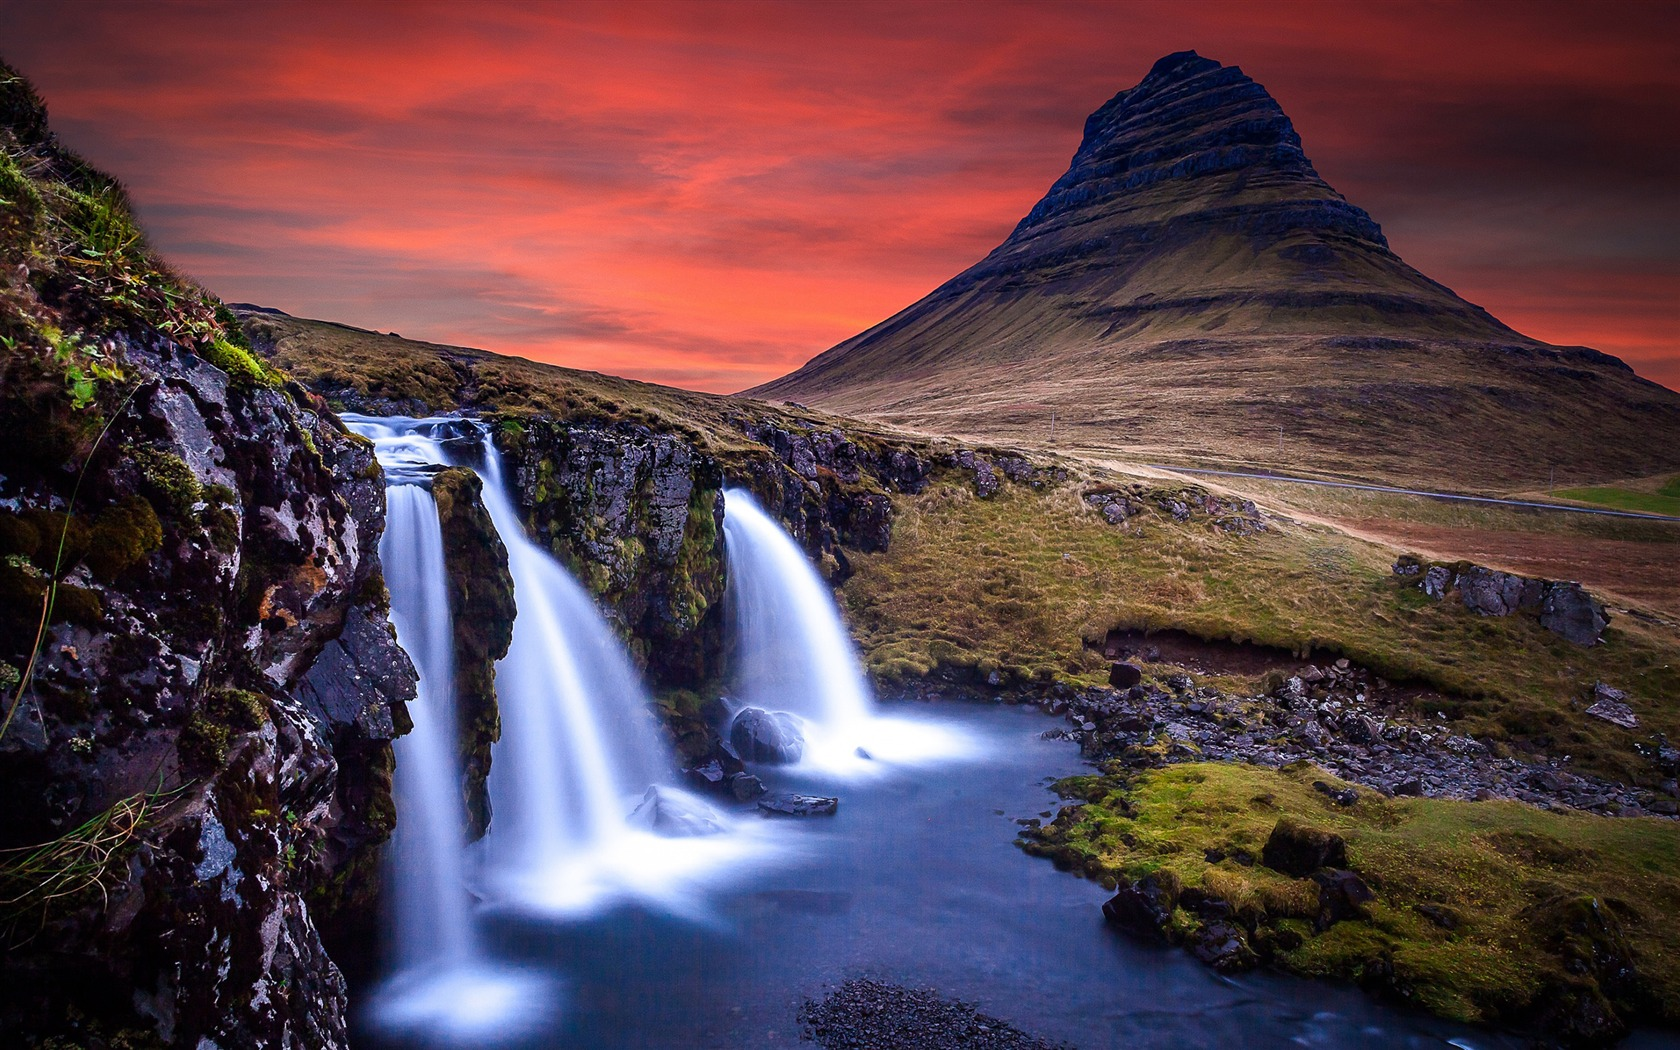 Sunset Waterfall Iceland Scenery Photo Hd Wallpaper